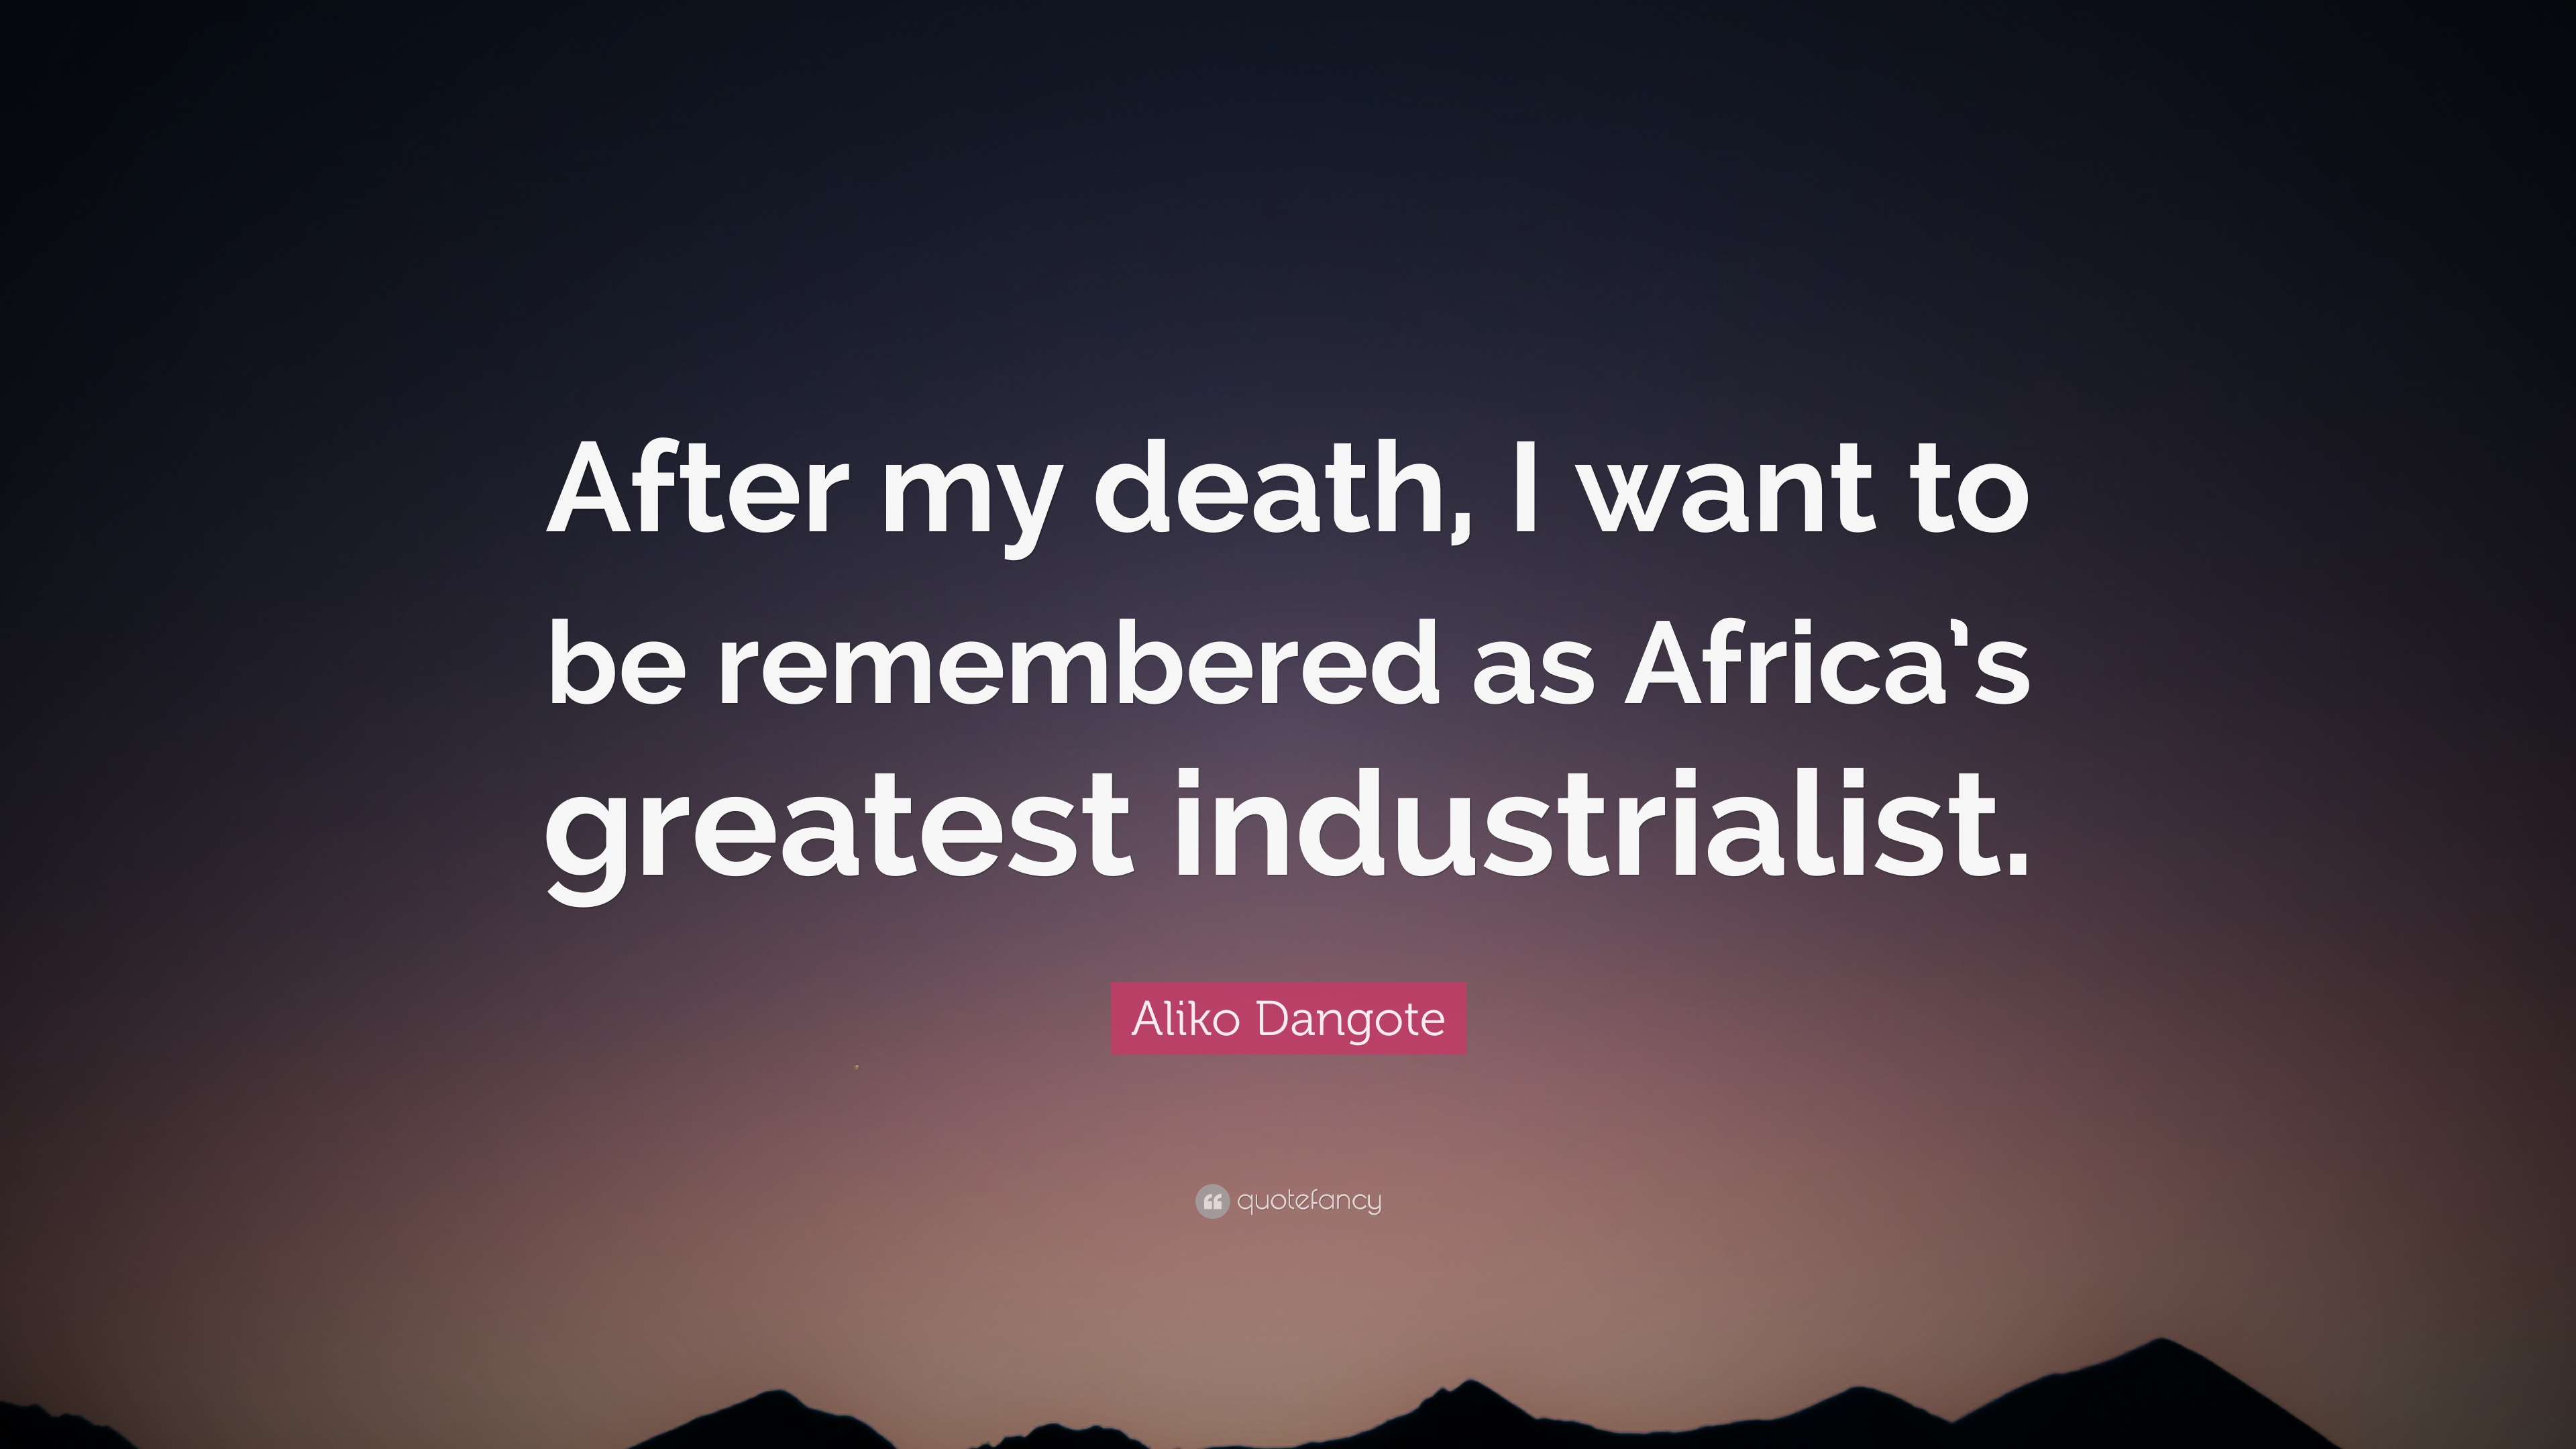 Aliko Dangote Quote After My Death I Want To Be Remembered As